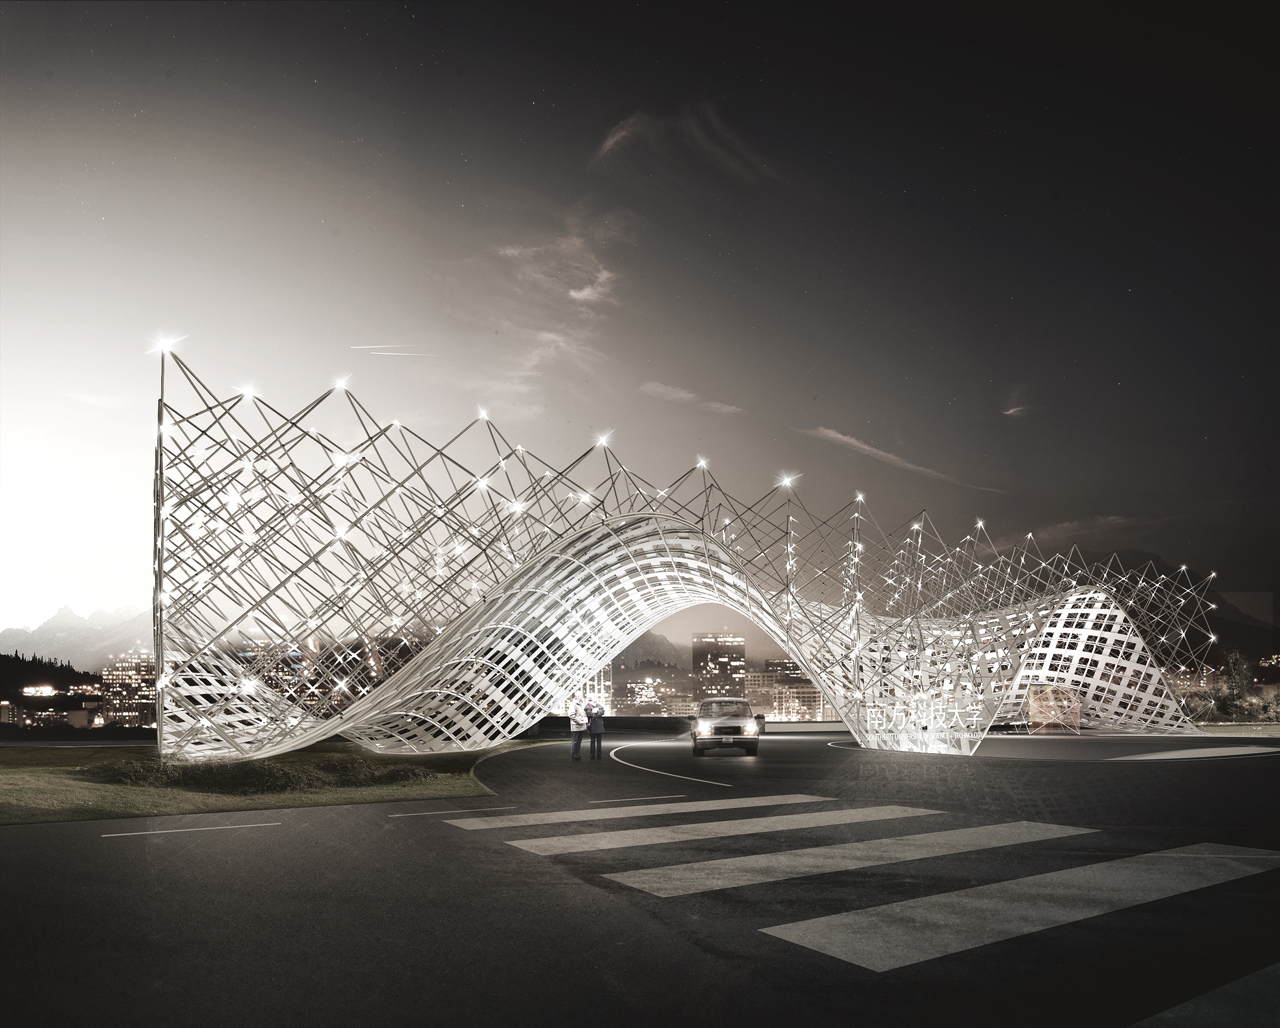 3d dreaming architecture from a digital point of view